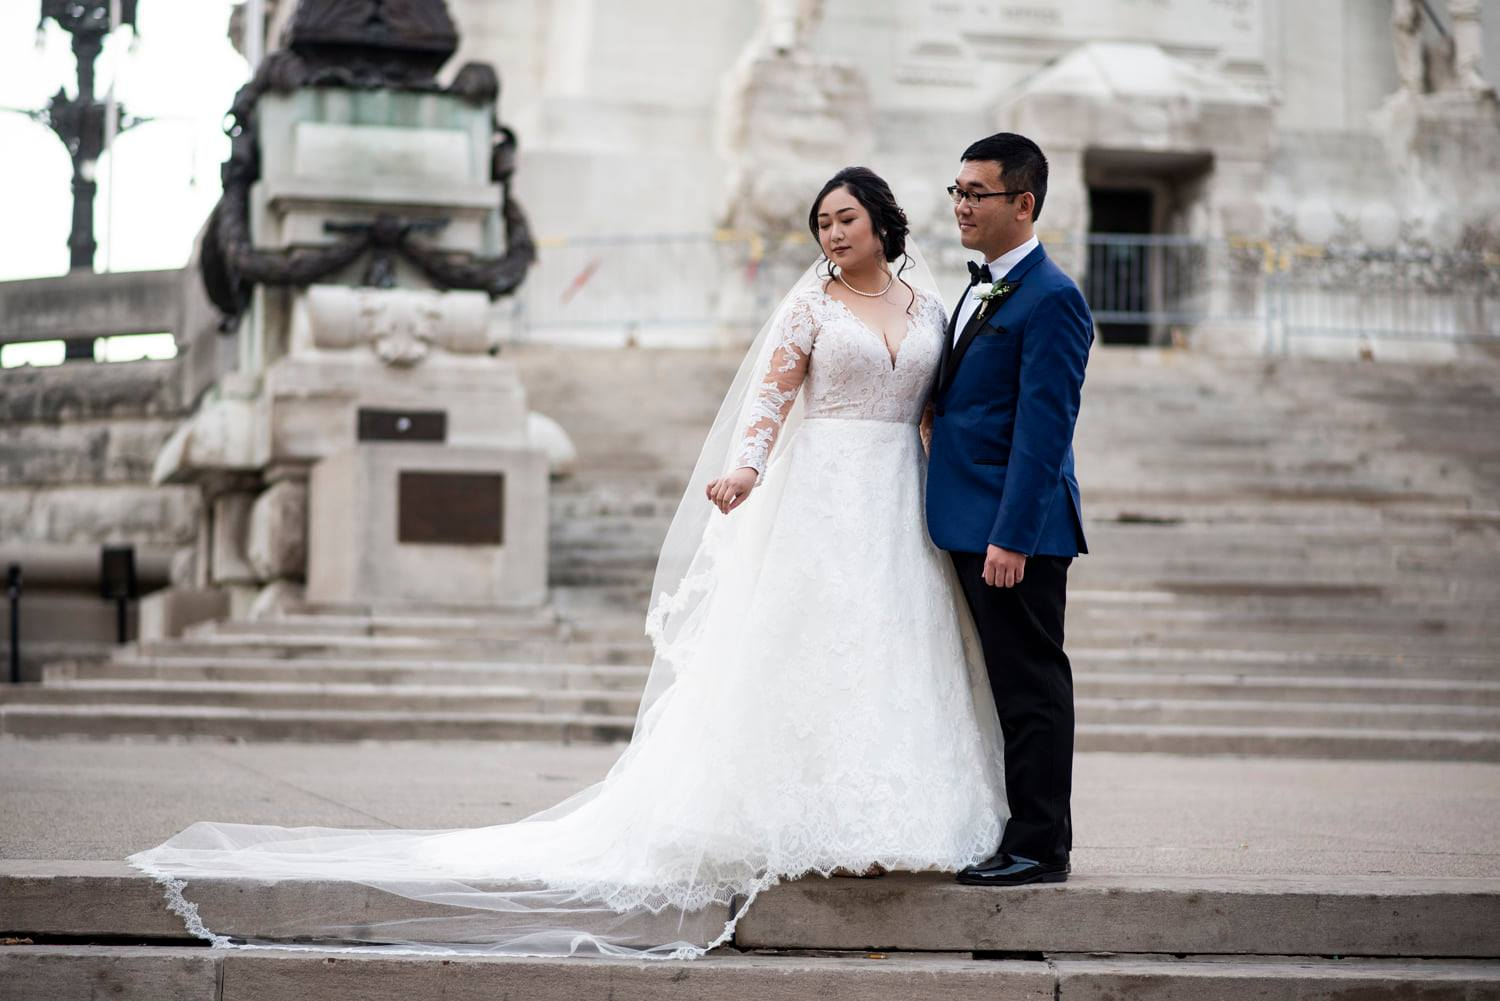 Indianapolis Couple on their wedding day at Indianapolis Soliders and Sailors Monument Downtown Indianapolis